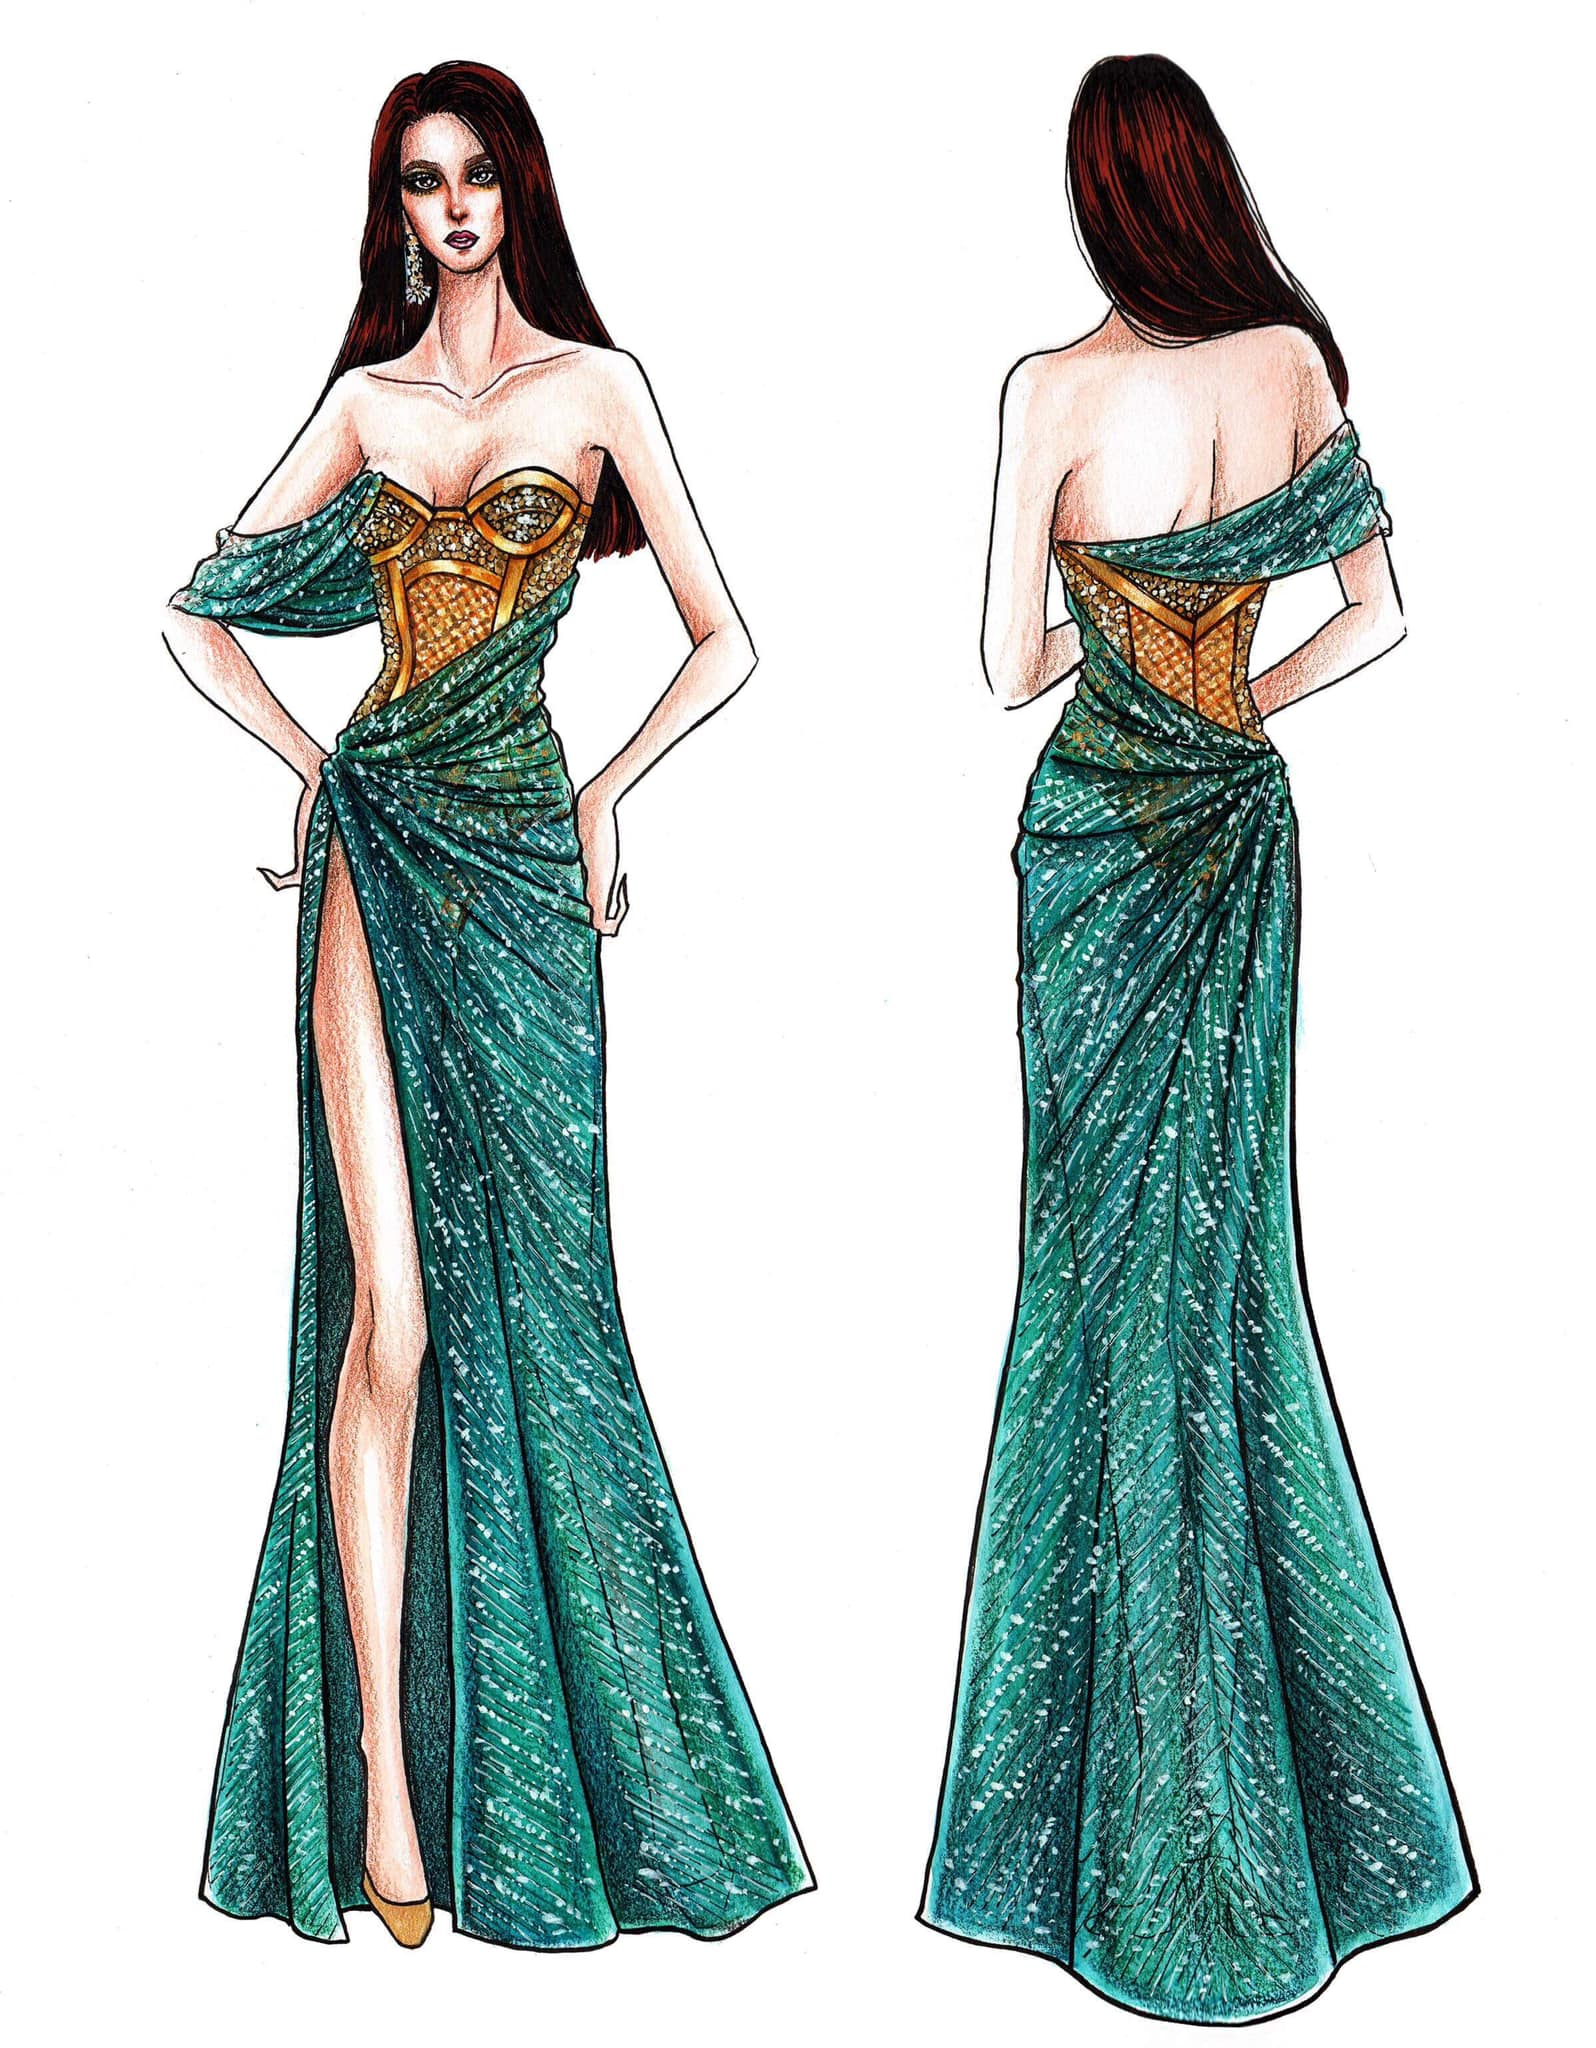 LOOK Mak Tumang Unveils Catriona Grayu0026#39;s 3rd Gown For Miss Universe